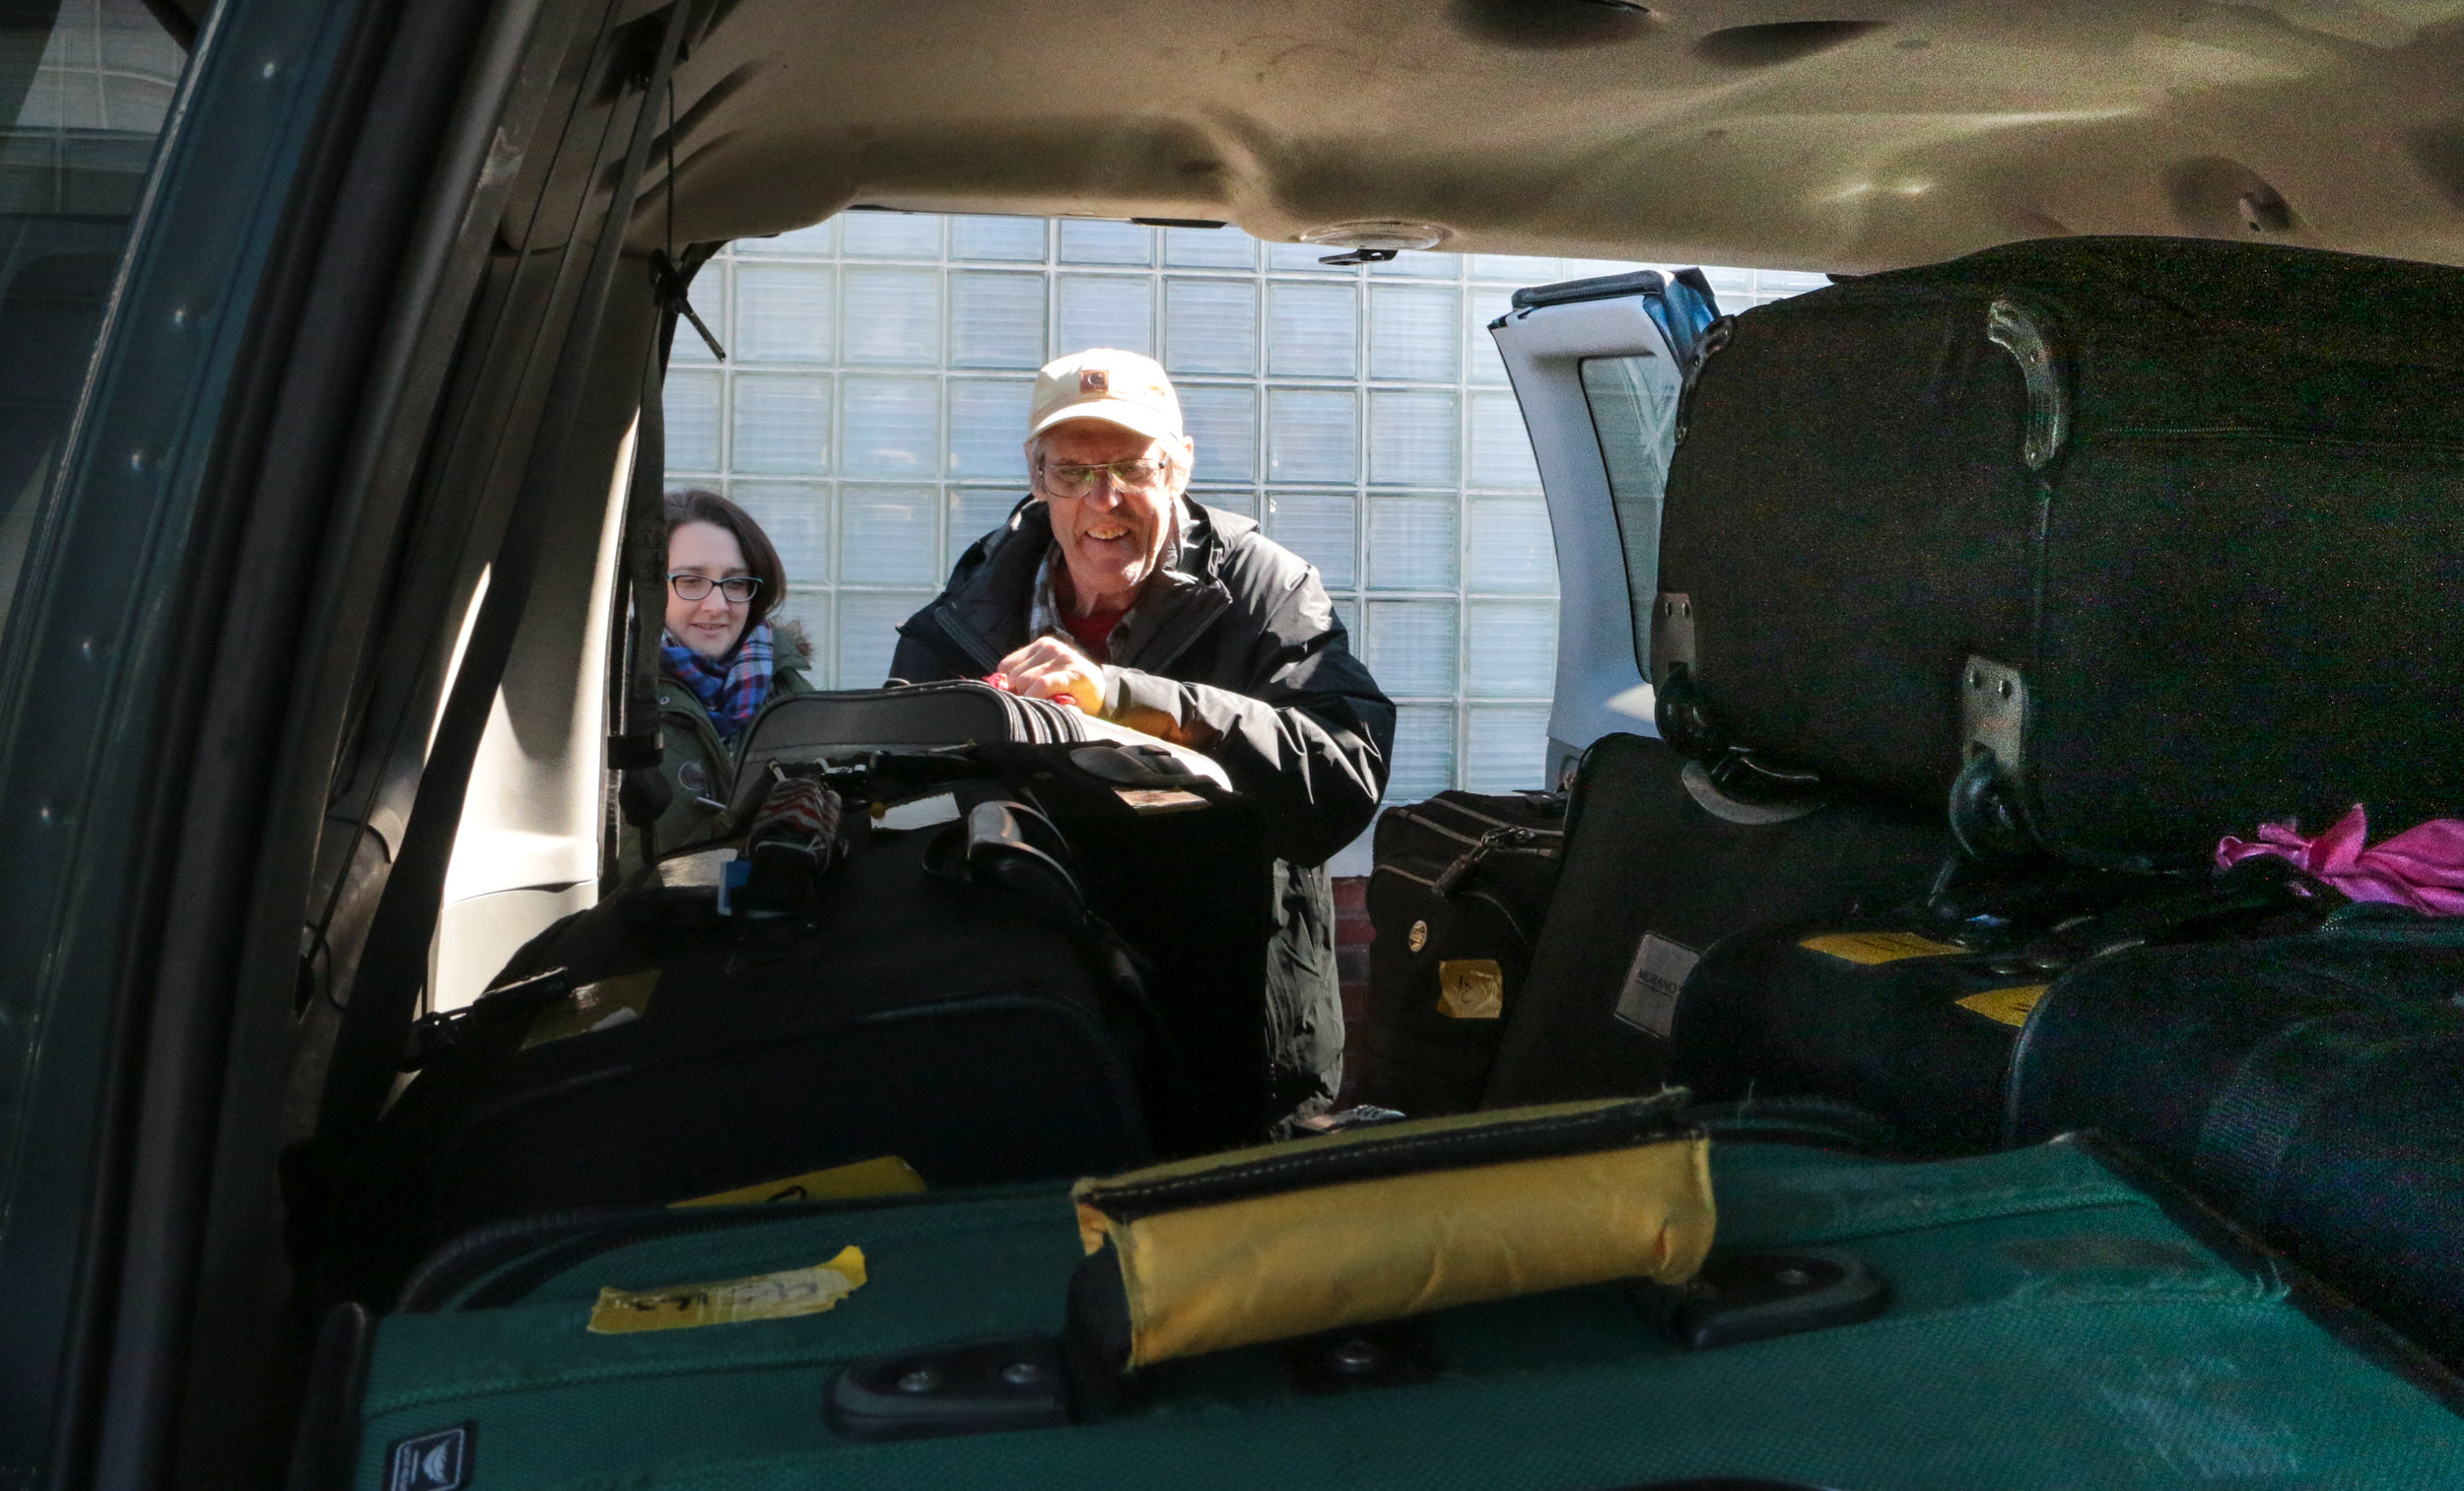 Airport Pick-Up - How do we get 16 suitcases and two missioners to the airport? Call Pat!